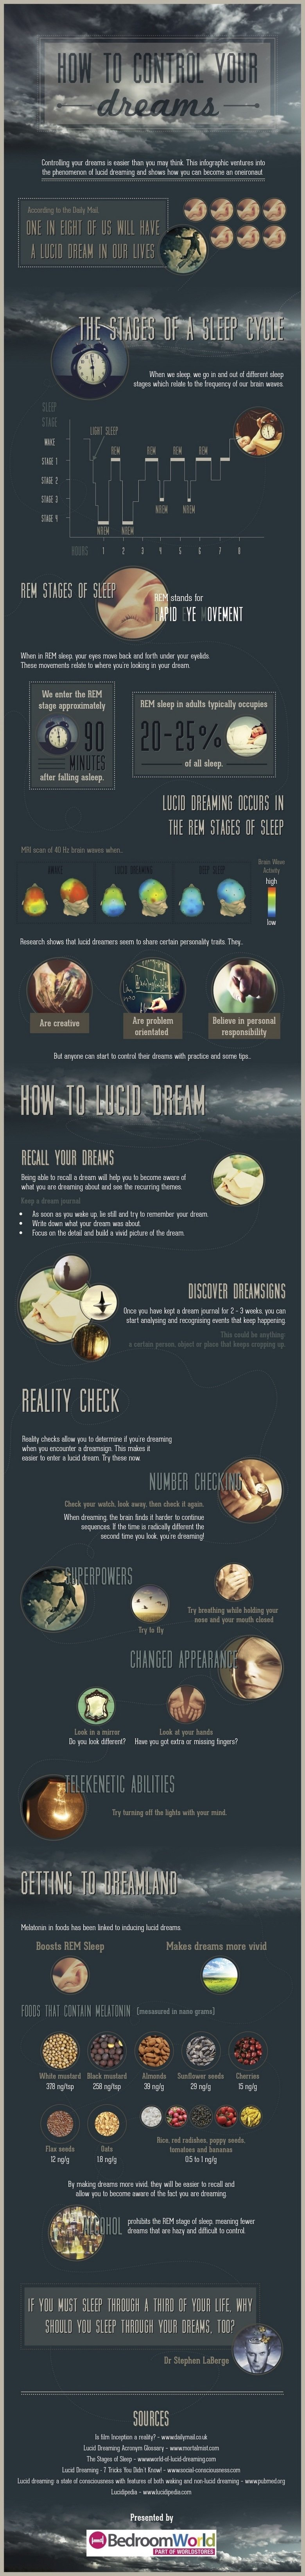 The only reason I look forward to sleep. Credit to Infographic Any luck FJ?. Controlling your dreams is easier than you may think. This infographic ventures int